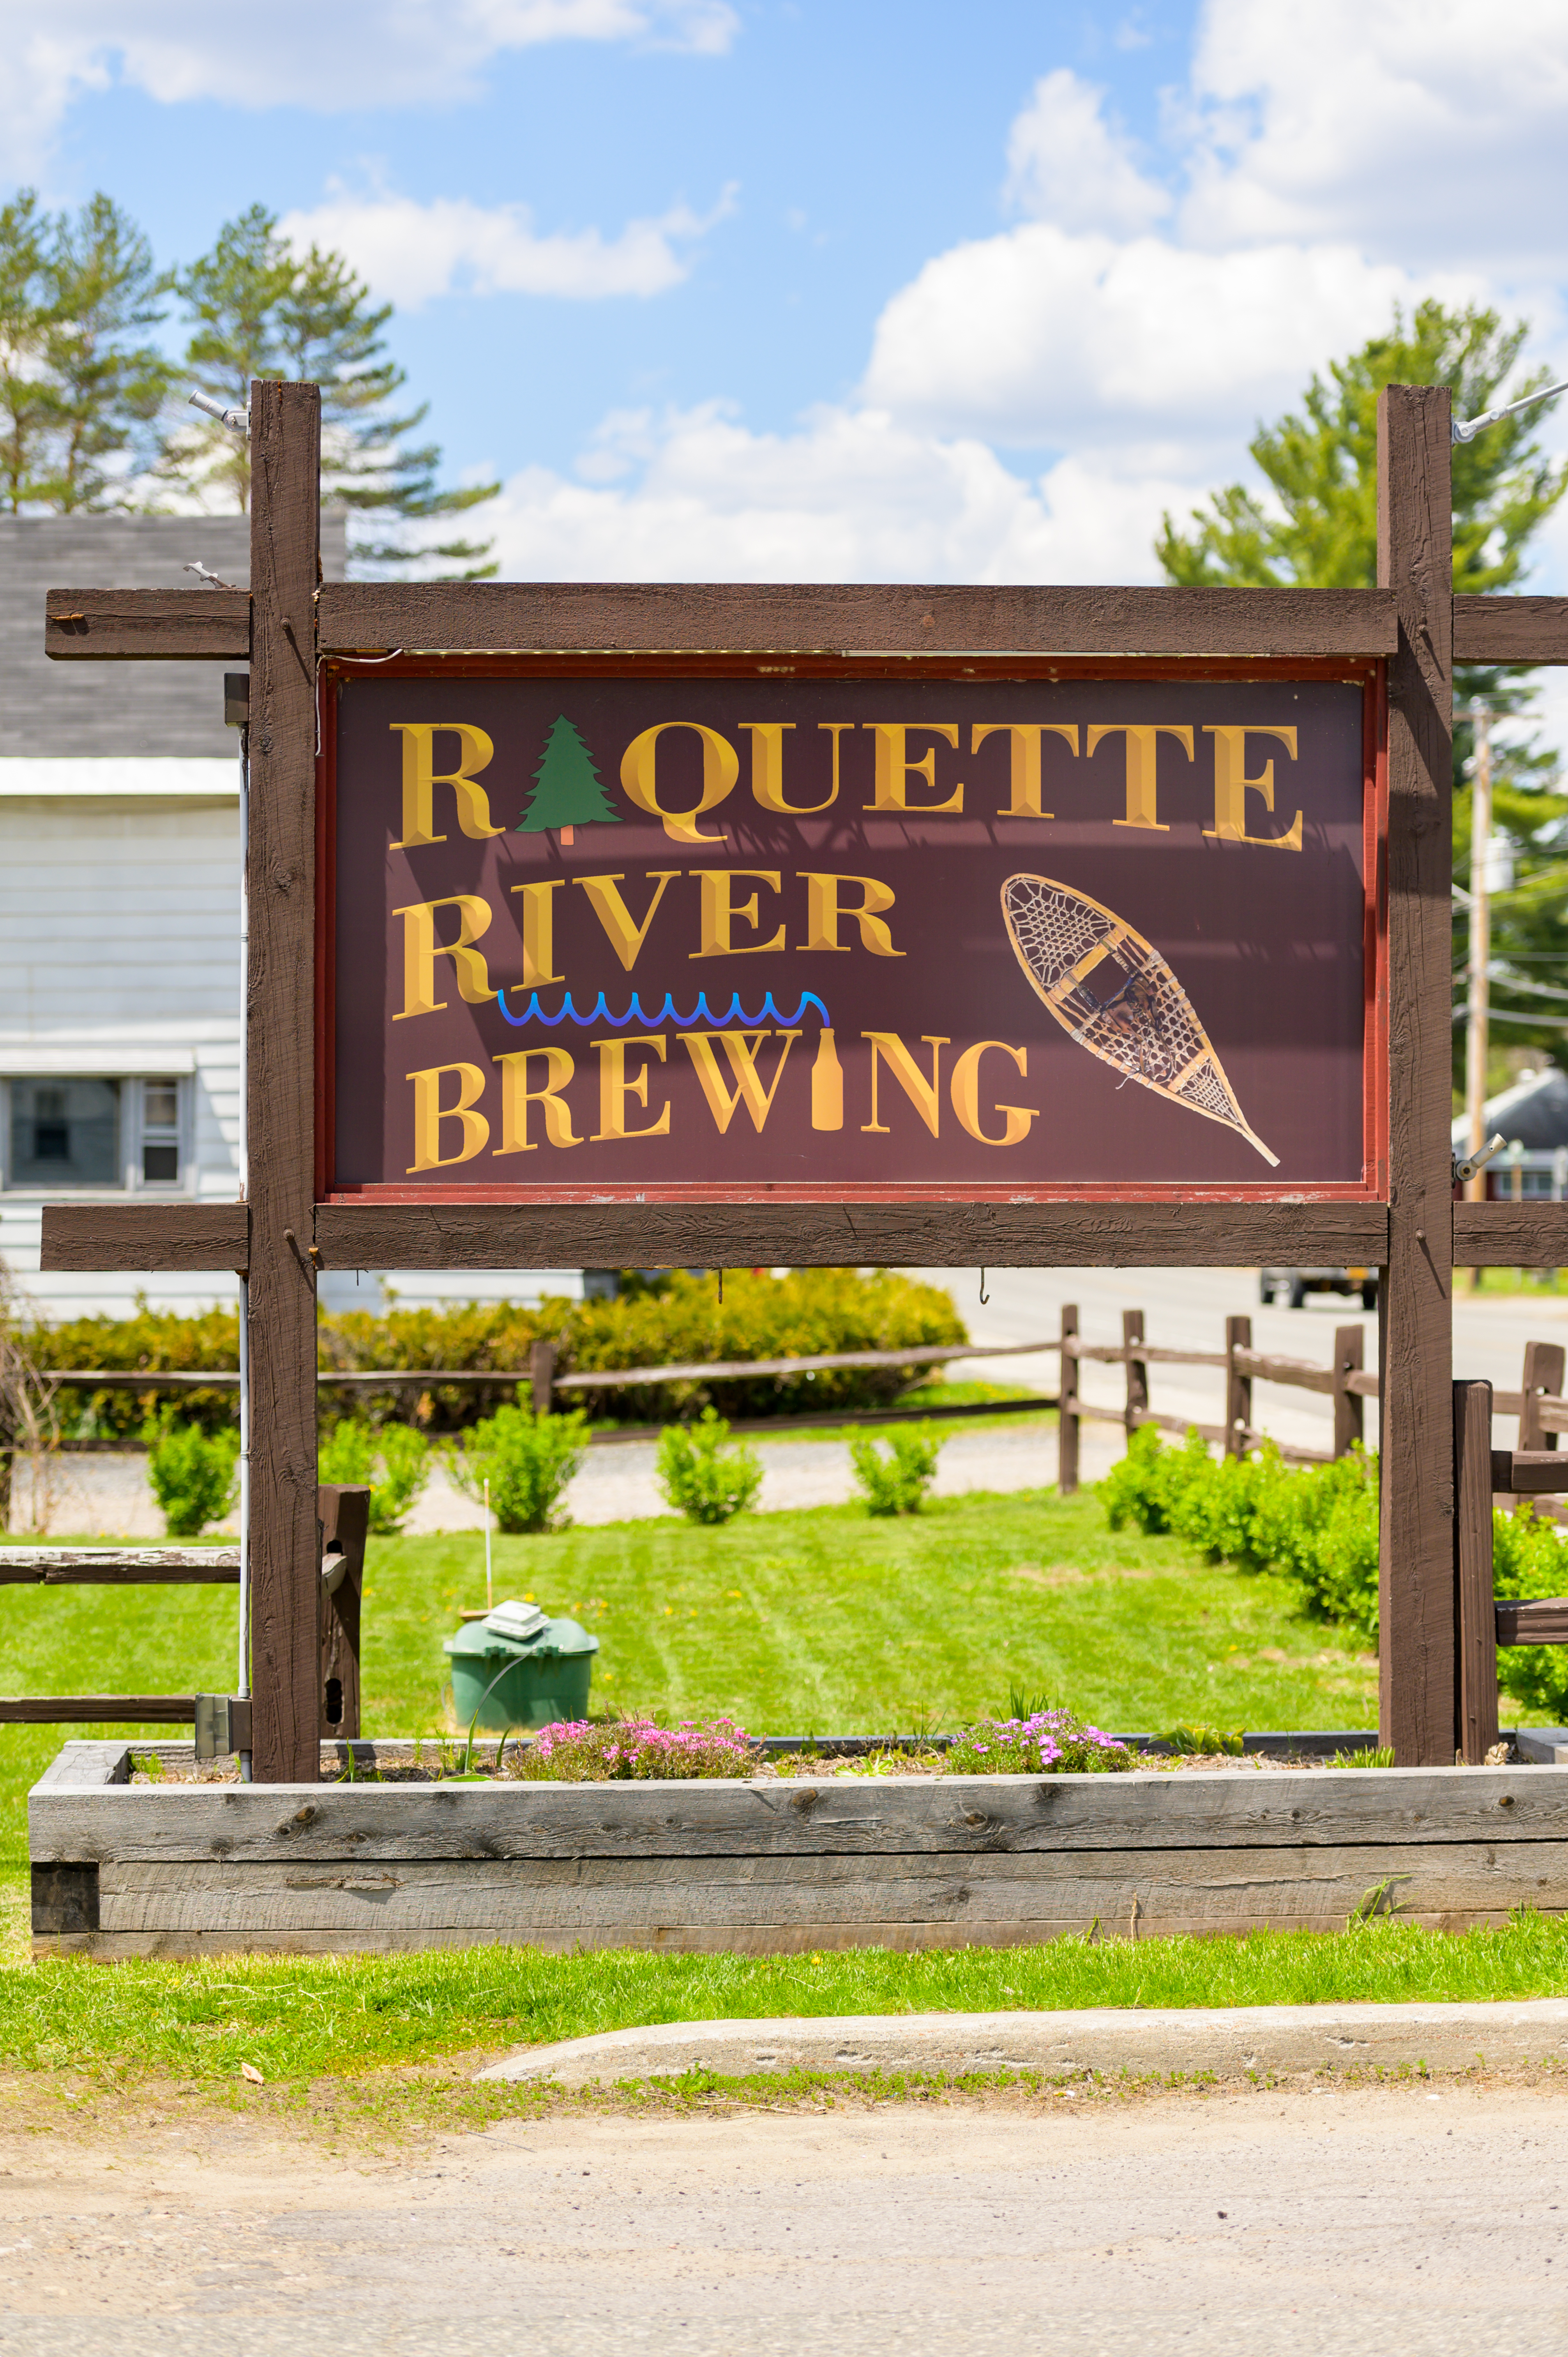 The entrance sign for Raquette River Brewing